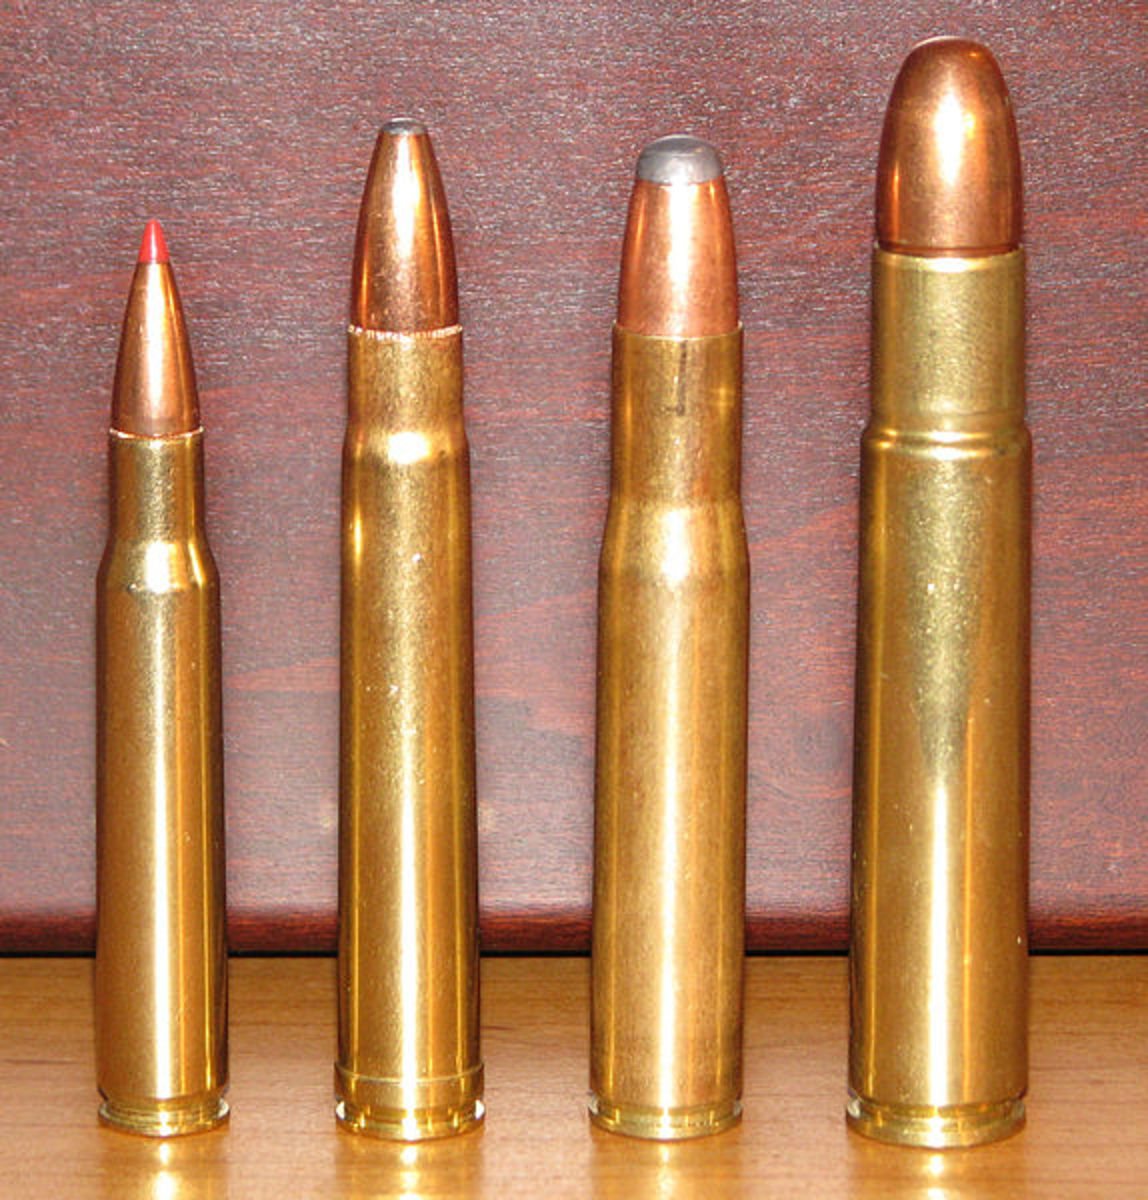 .404 Jeffery, third from left.